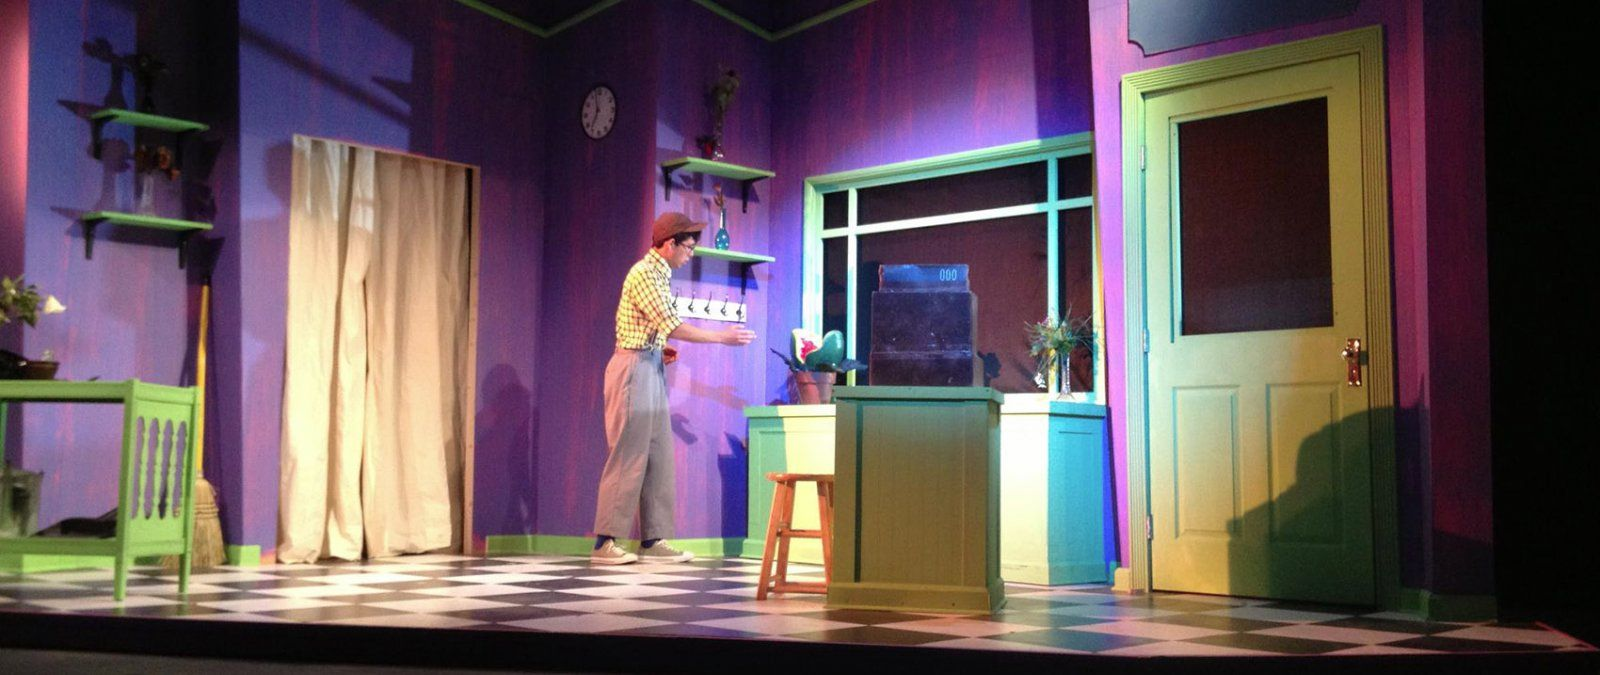 Male actor cautiously approaching sink while acting in Little Shop of Horrors